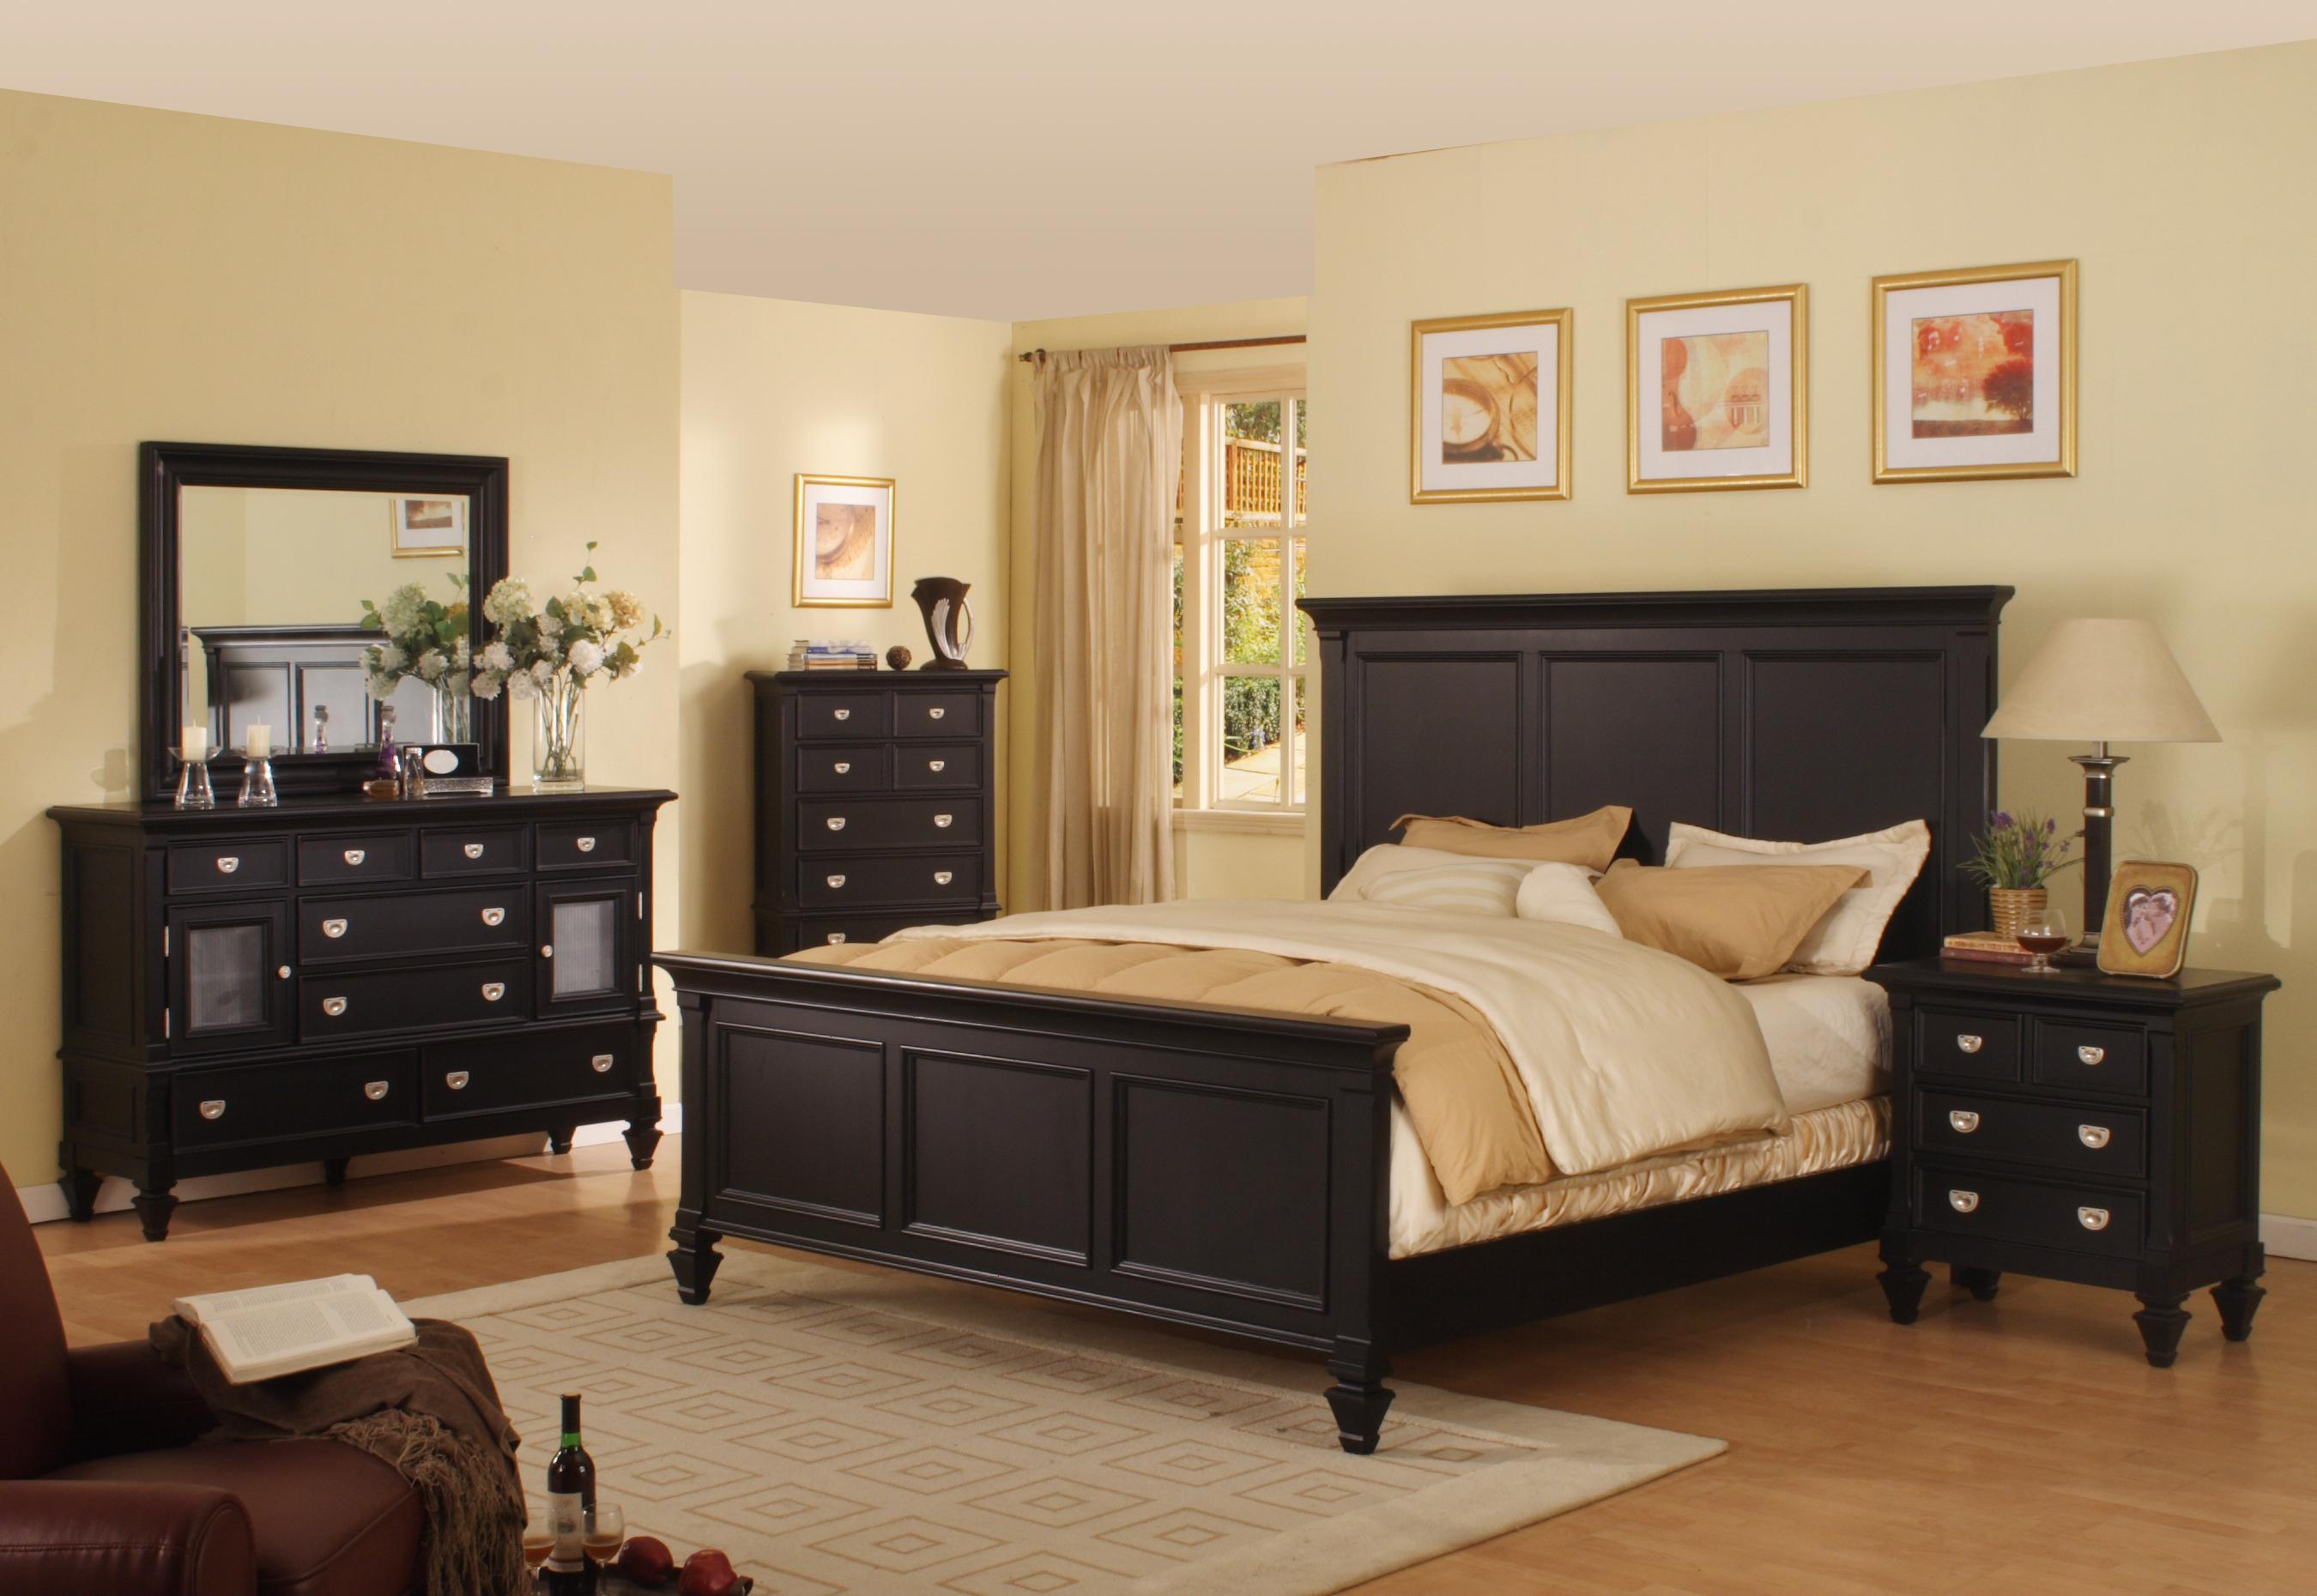 holland house summer breeze night stand royal furniture night stands memphis jackson nashville cordova tennessee southaven mississippi fancy black bedroom sets